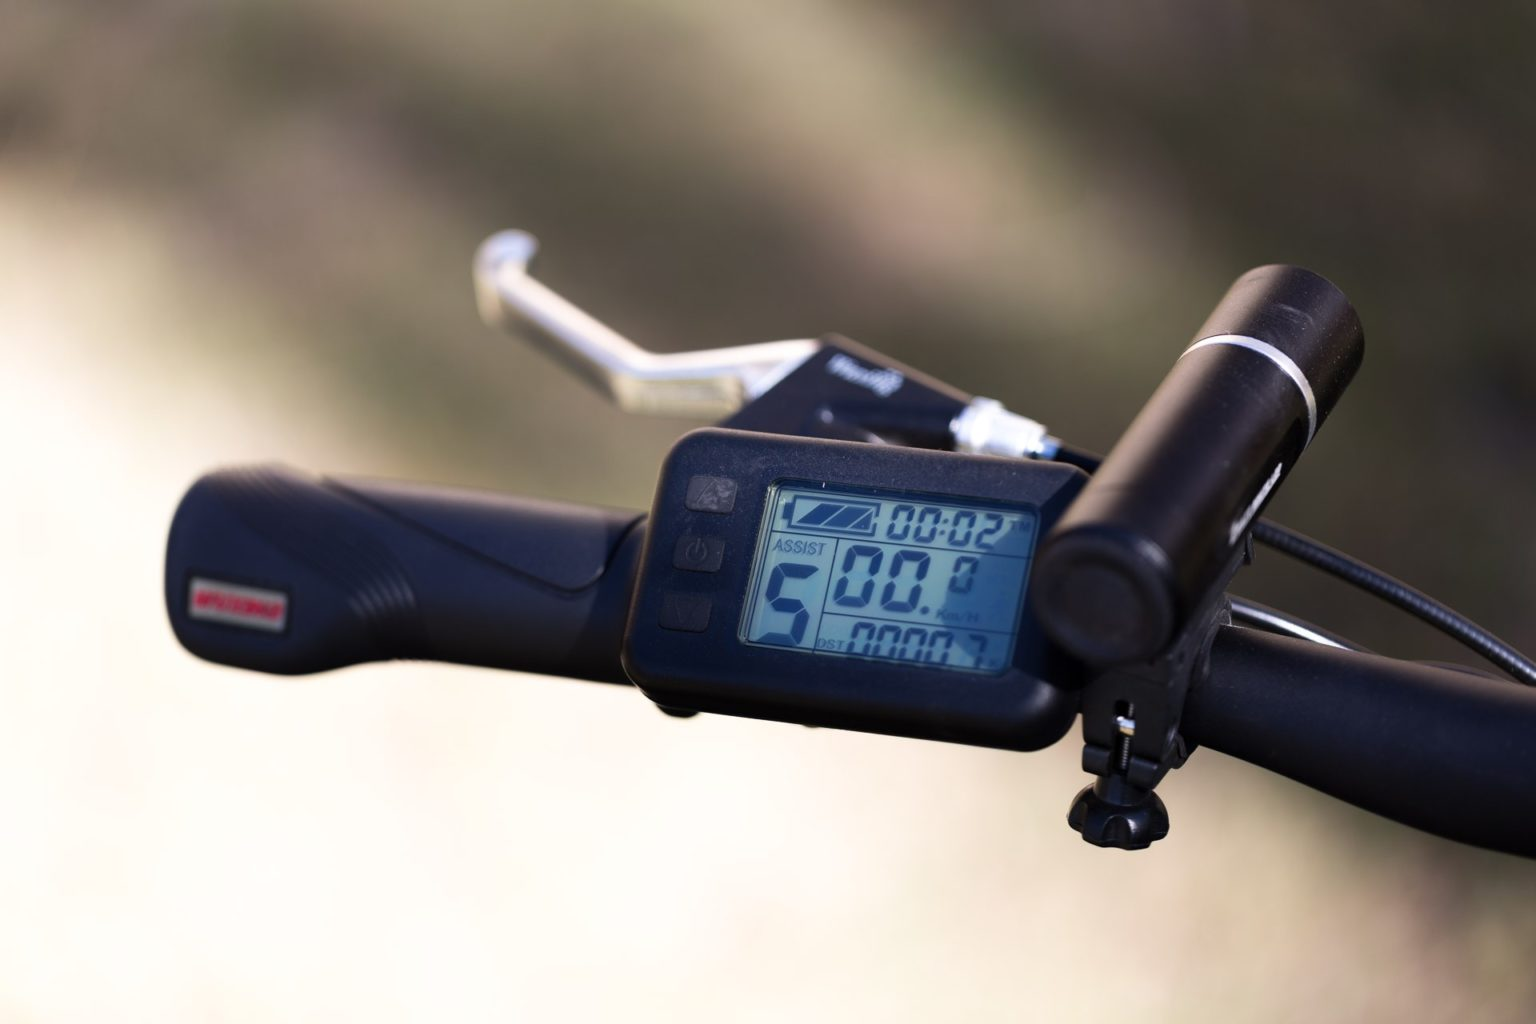 Ezy bike blog about electric bikes in Cape Town pedal assist levels